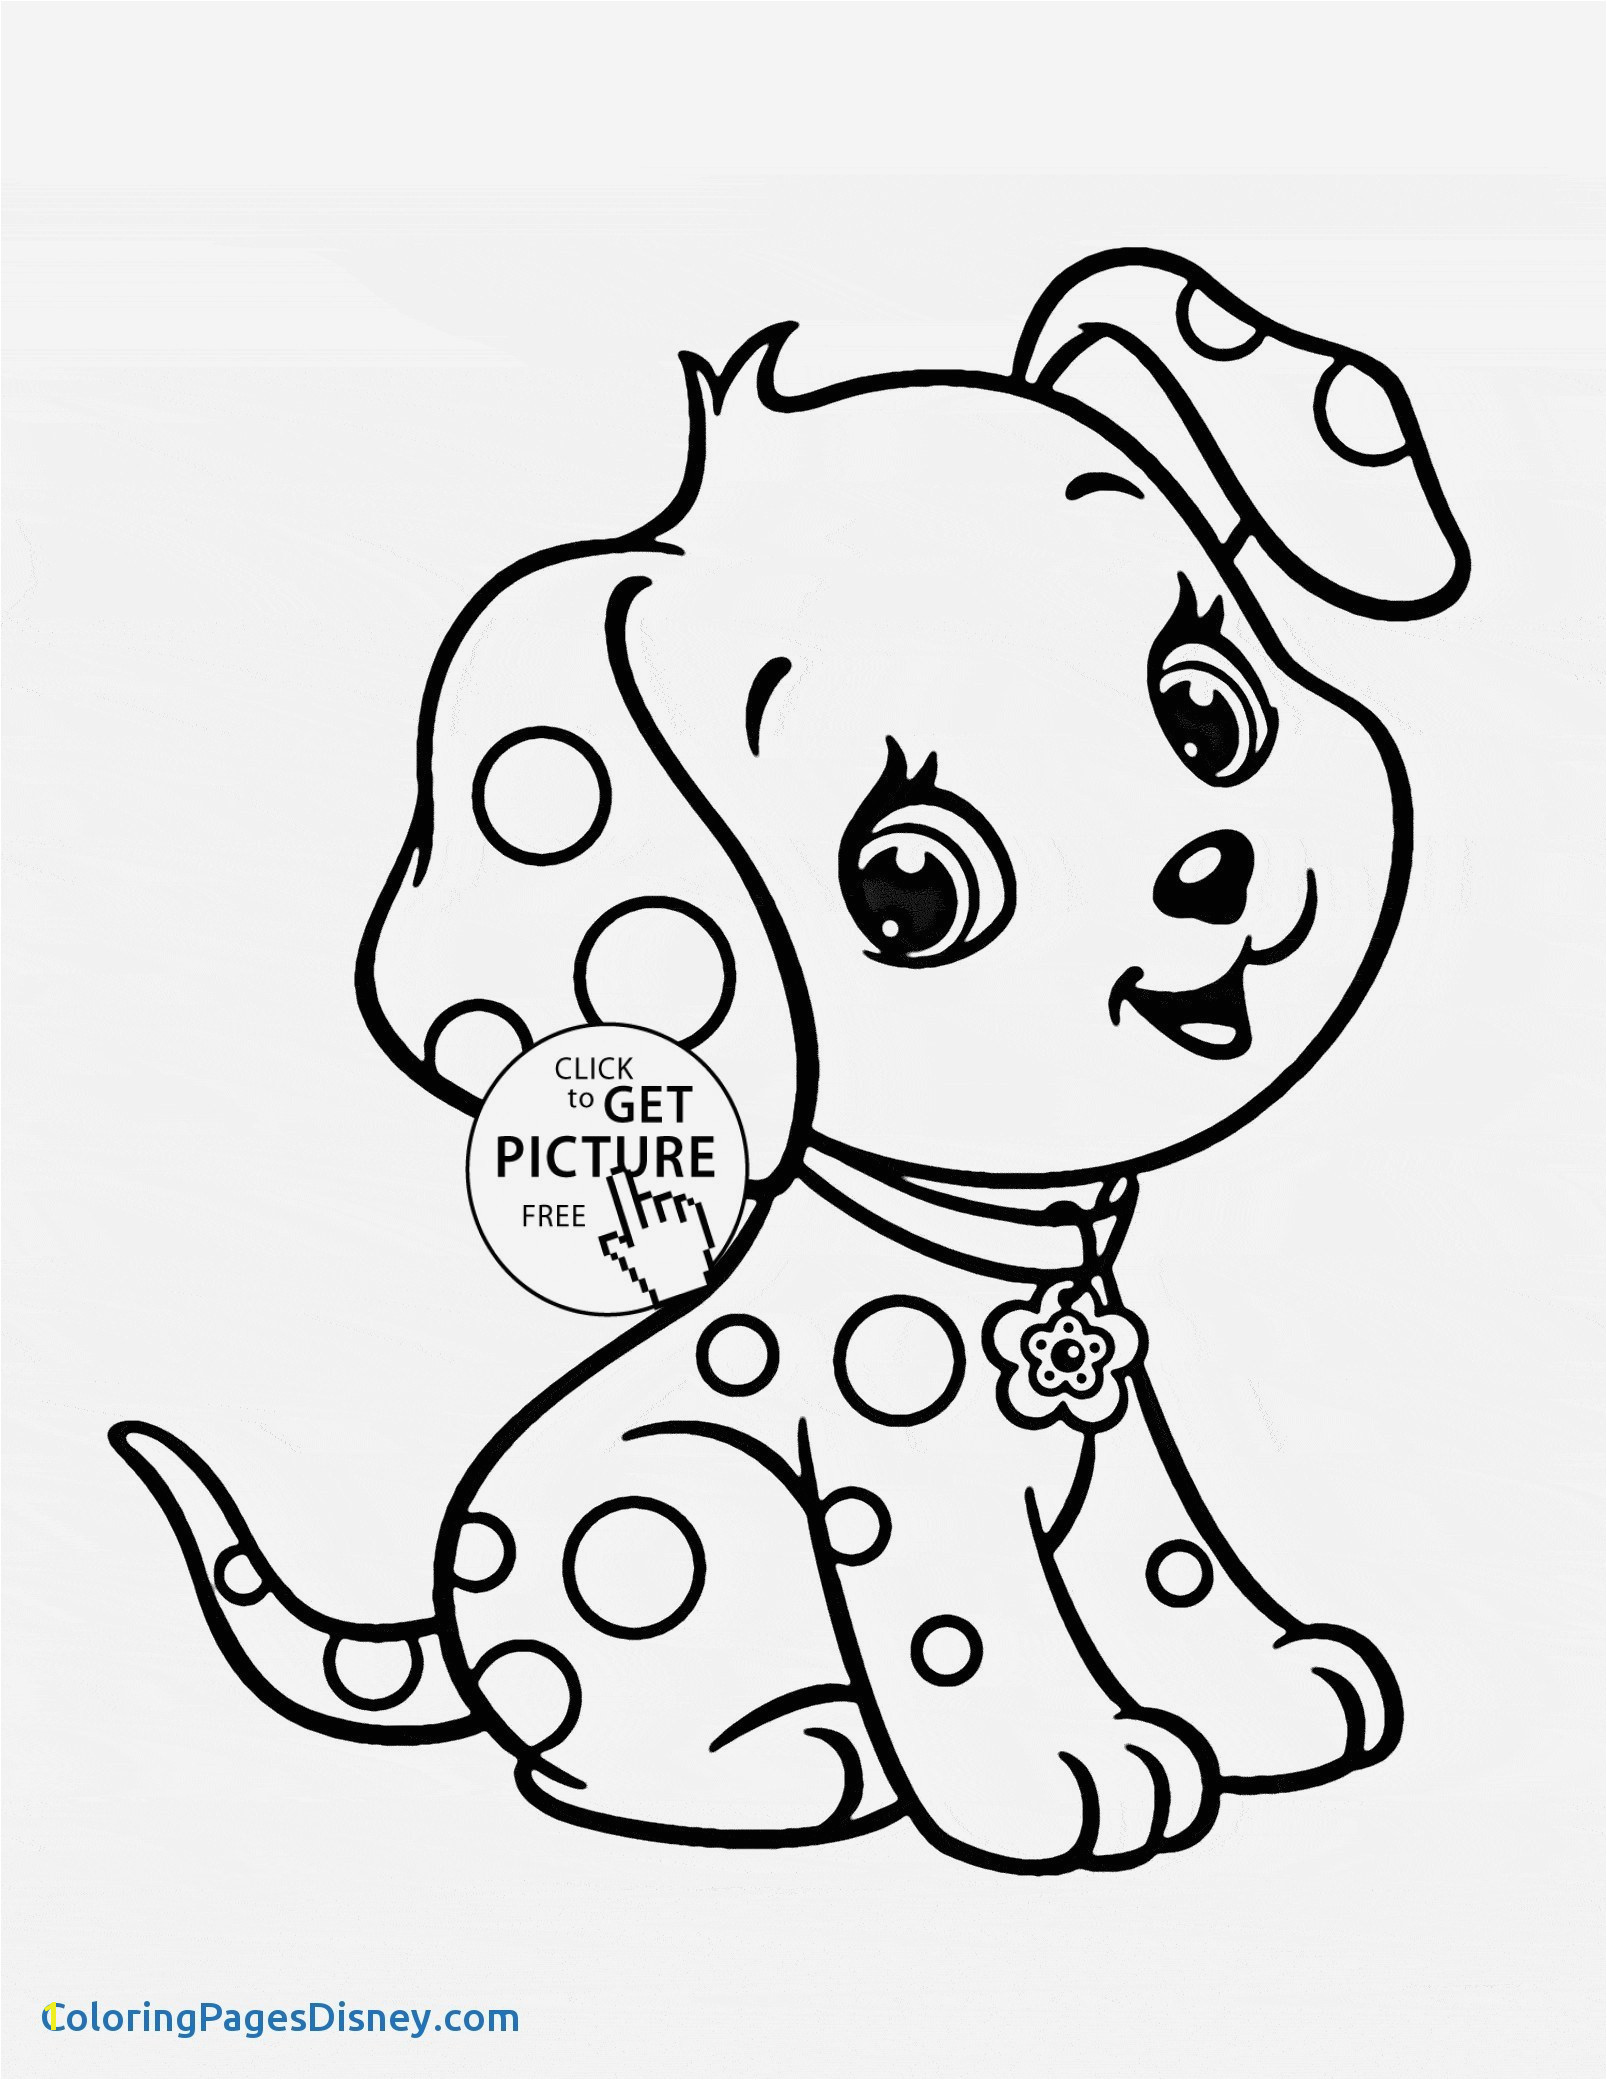 Cheetah Coloring Pages Free Coloring Pages Mountains Beautiful Printable Free Printable Coloring Books Lovely Printable